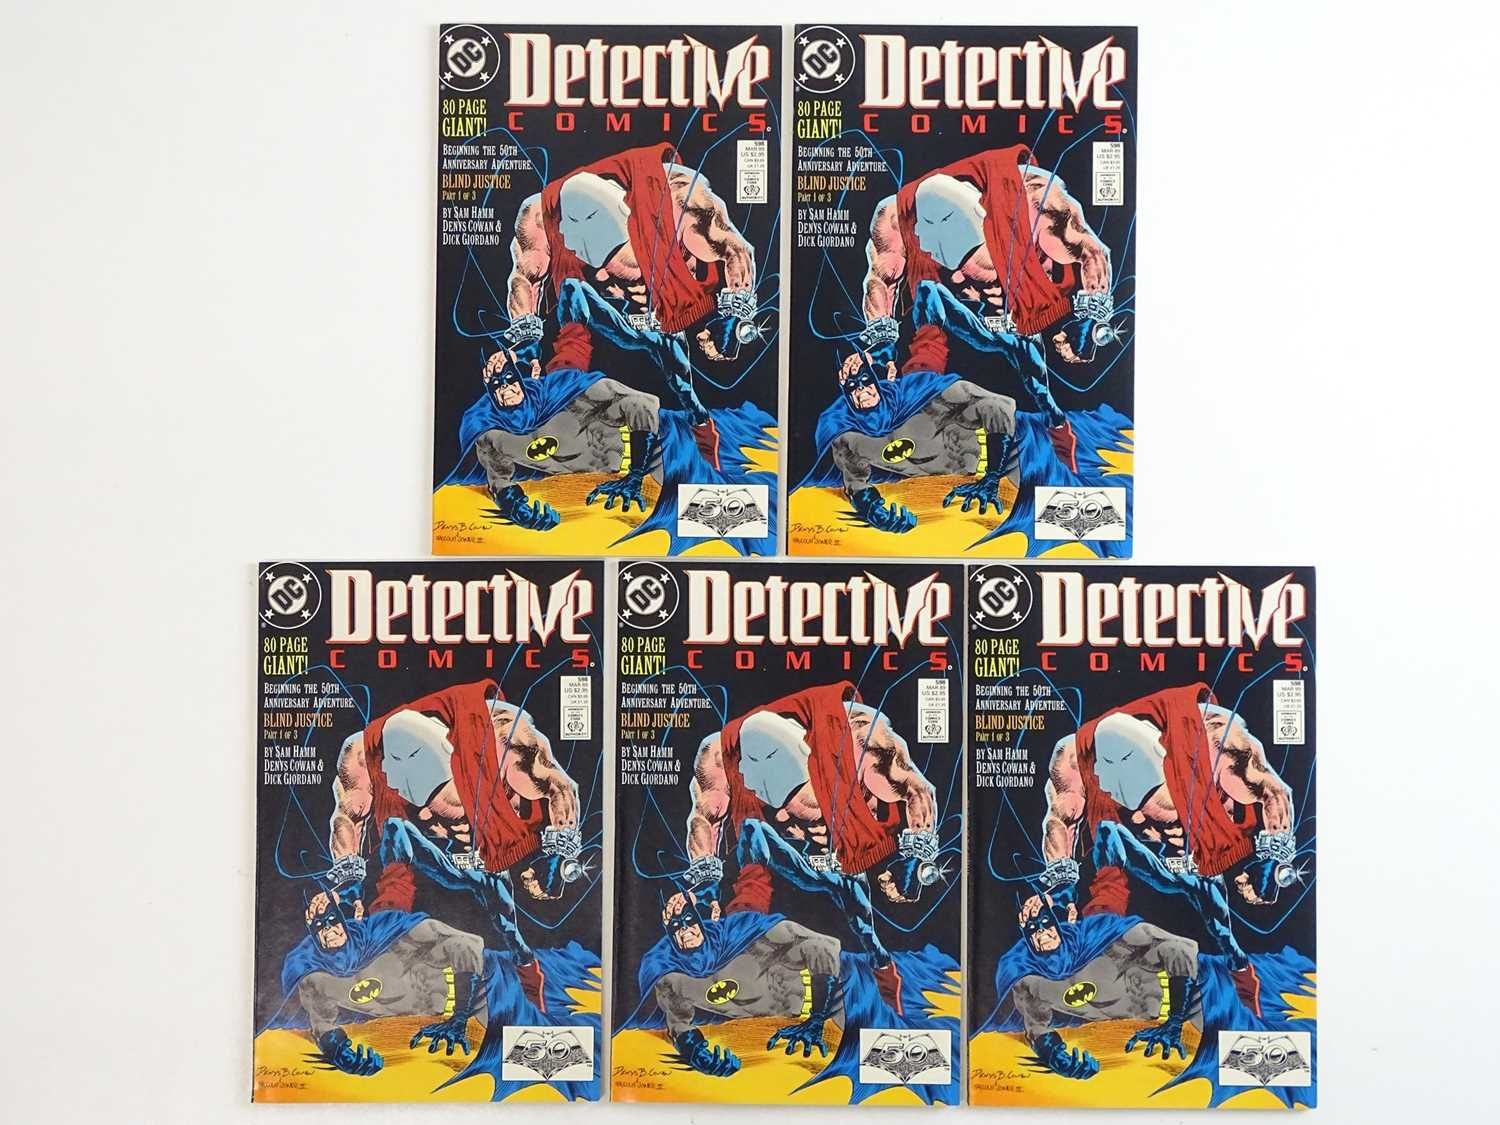 DETECTIVE COMICS: BATMAN #598 - (5 in Lot) - (1989 - DC) - First Printing - Five (5) #598 issues for